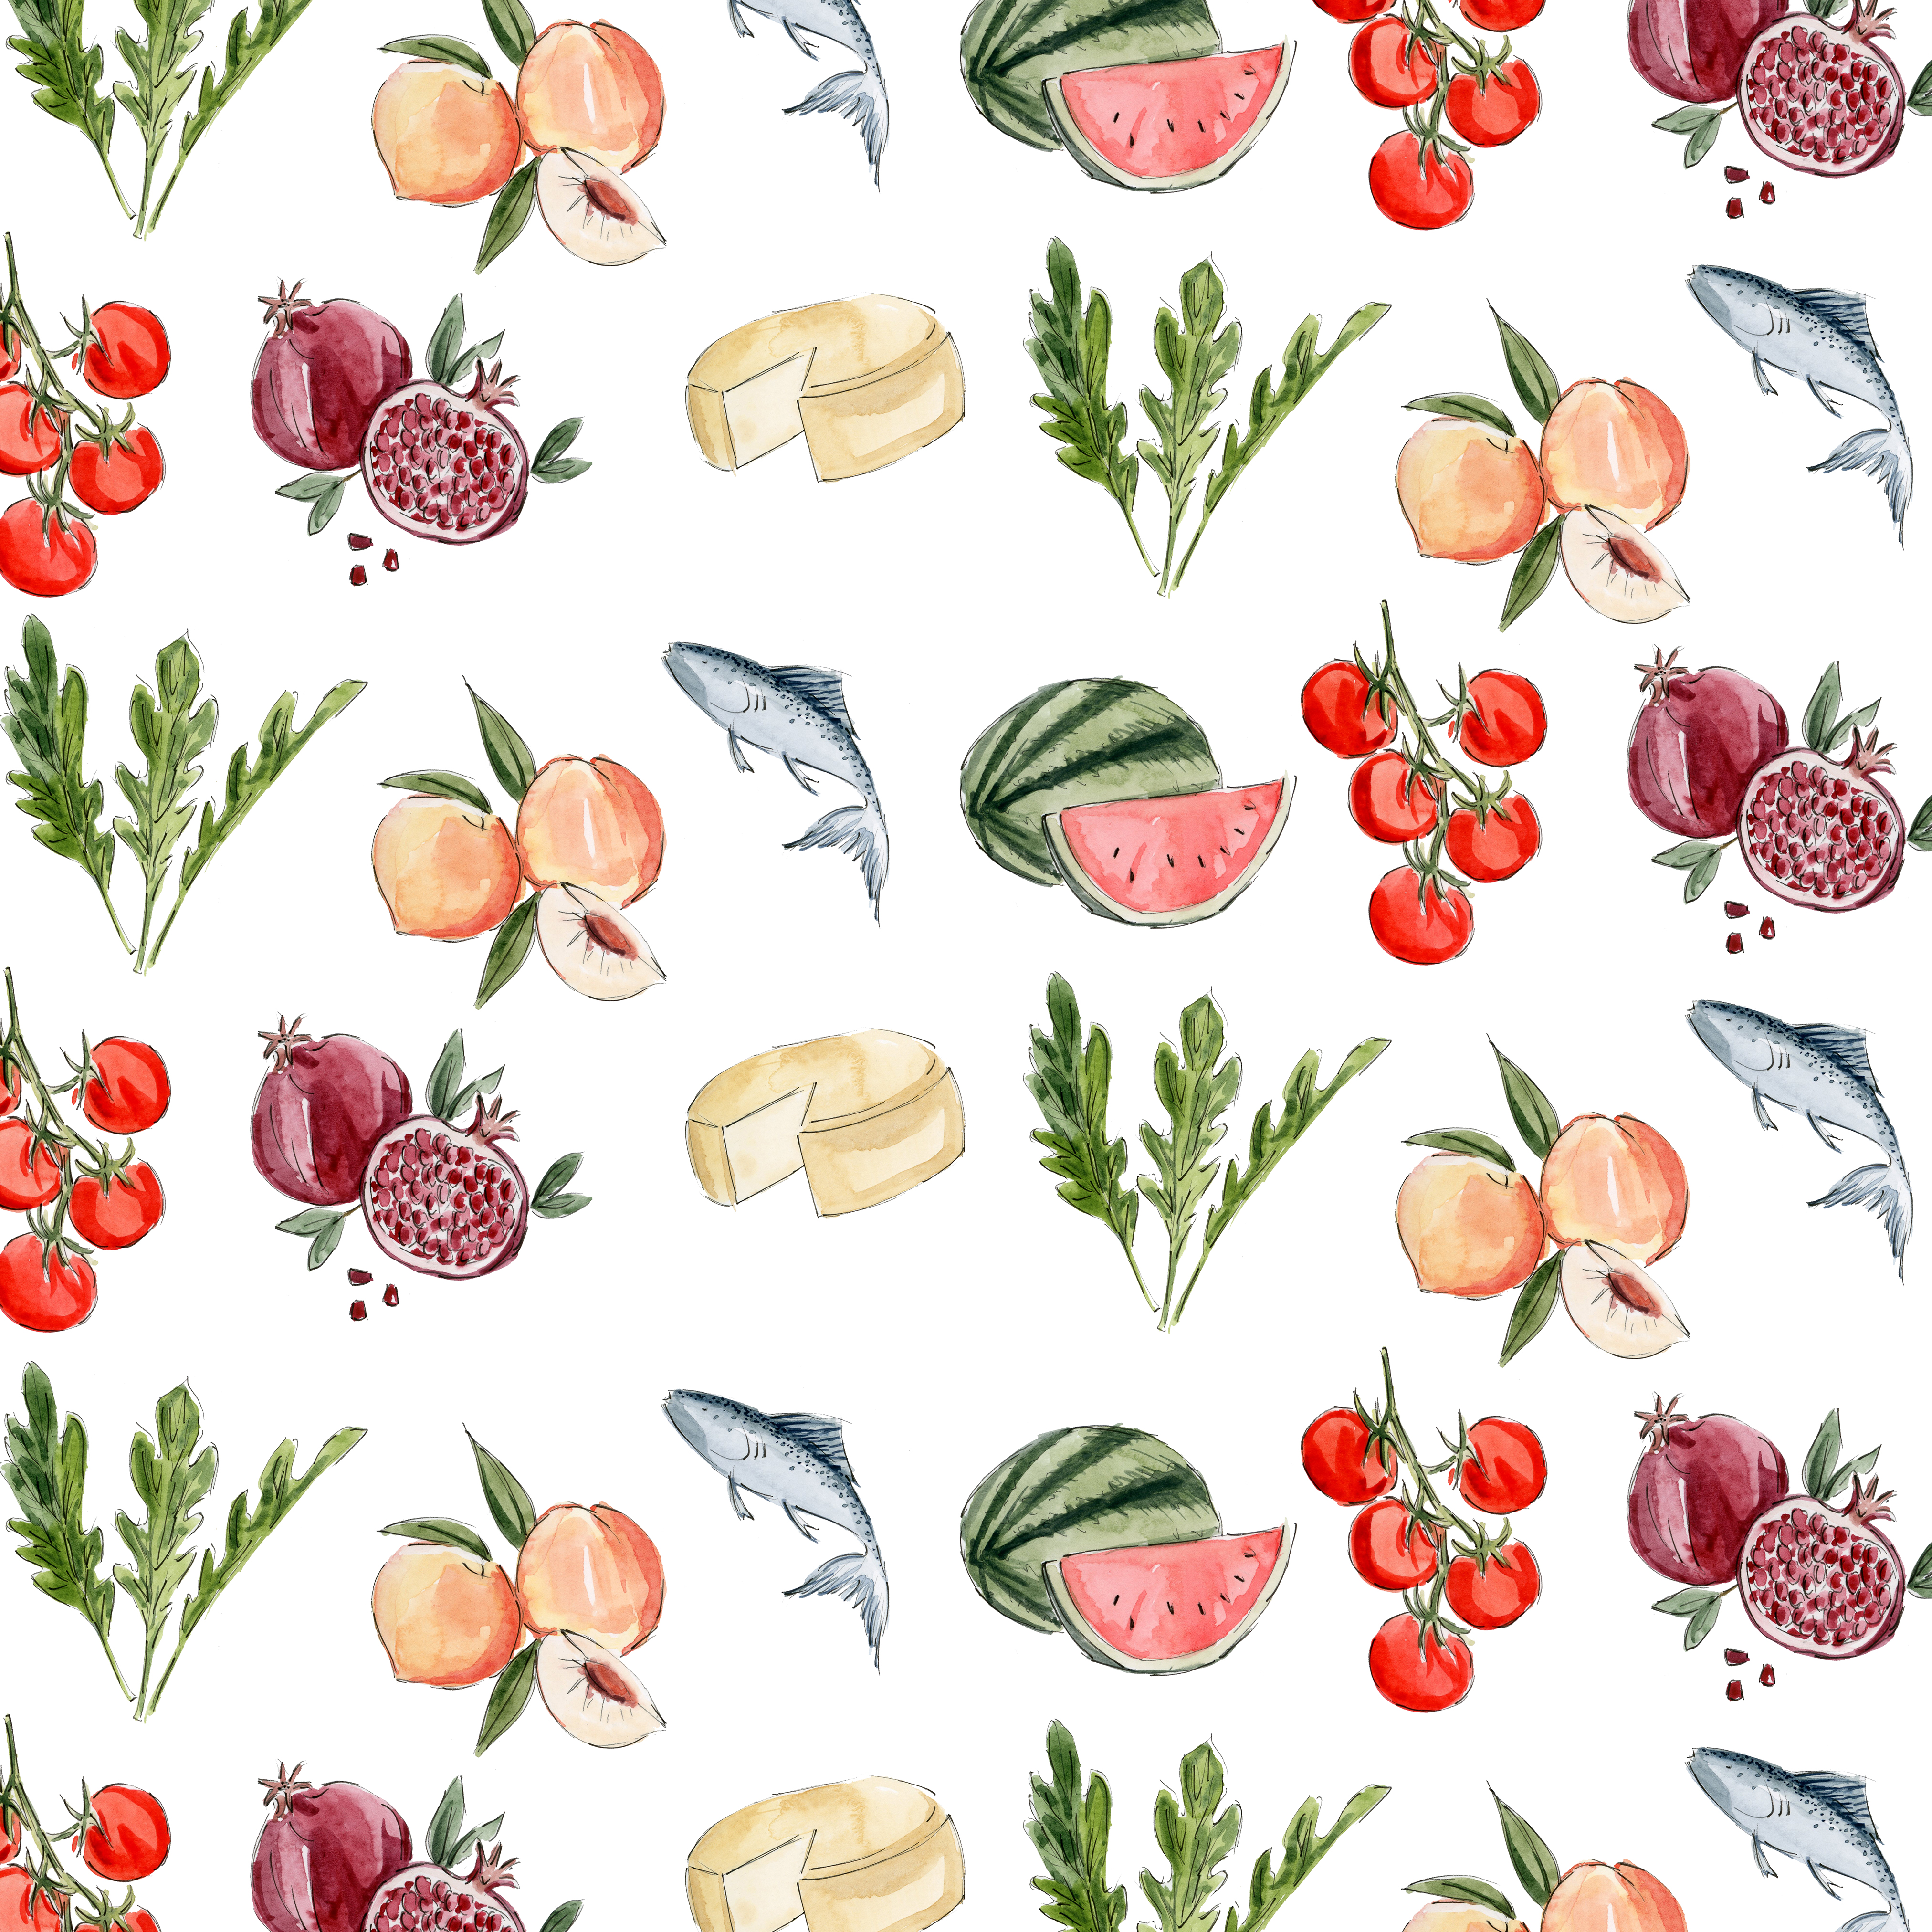 Illustrated menu items